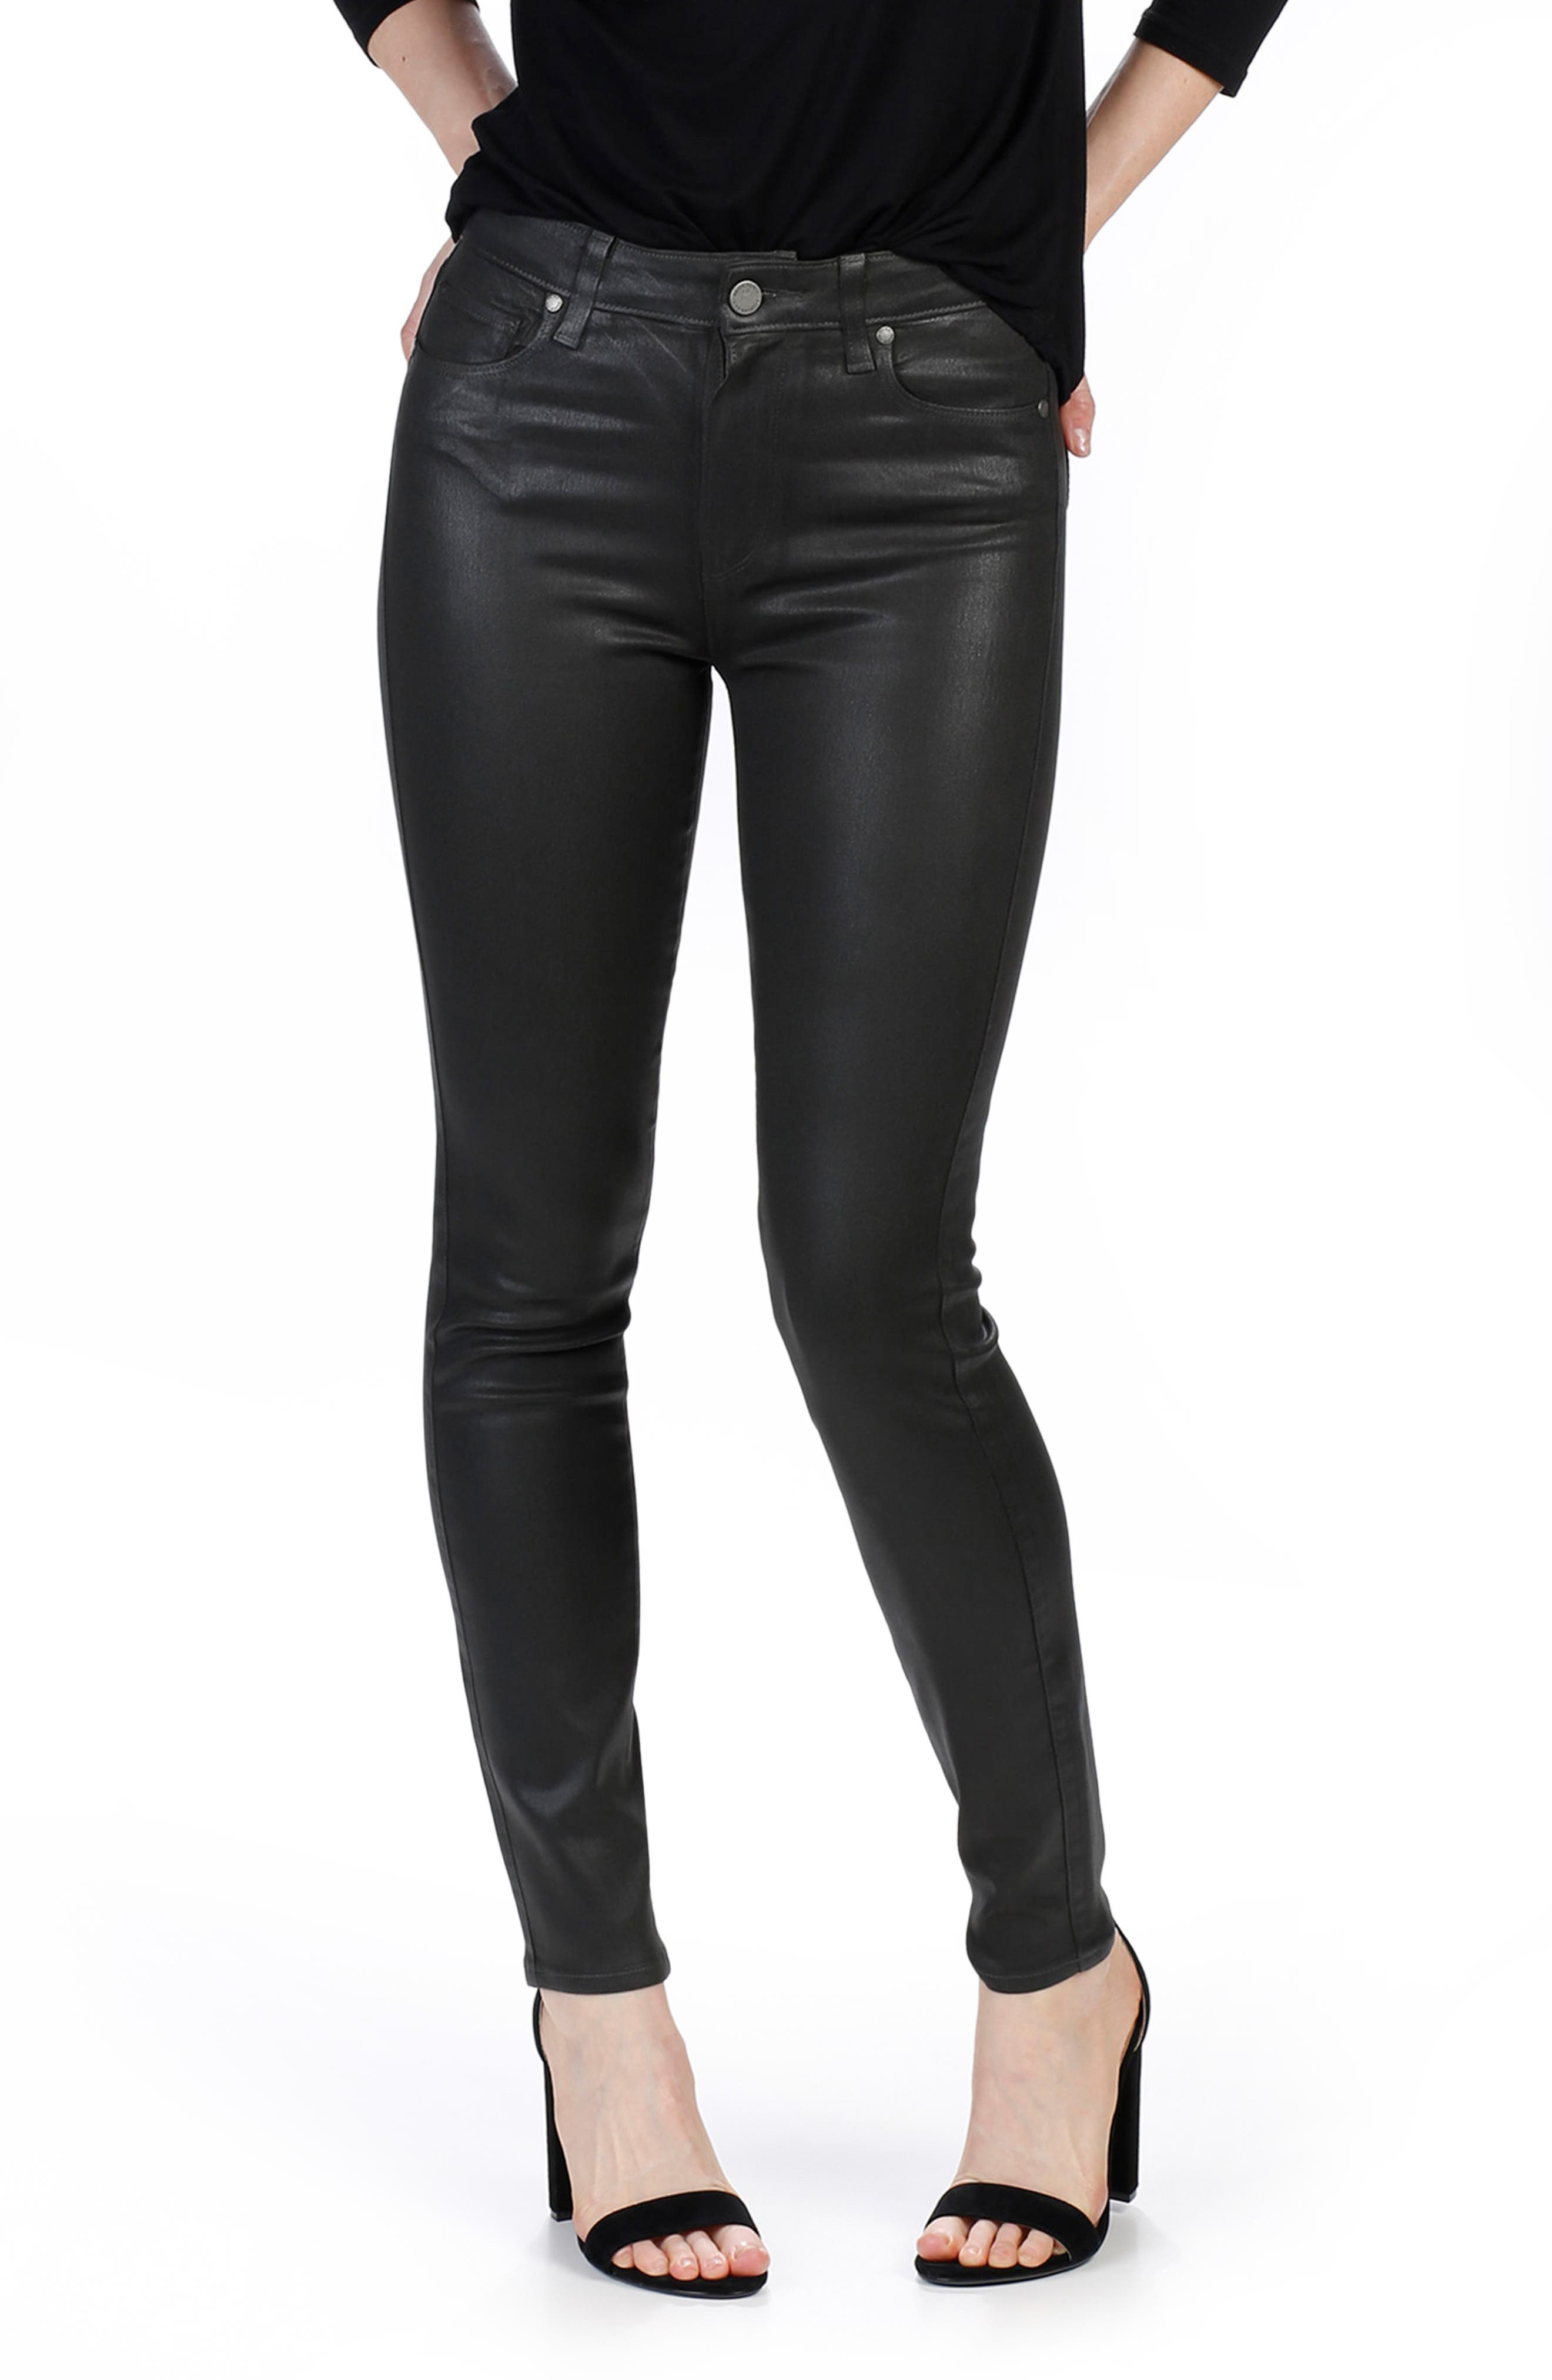 Transcend - Hoxton Coated High Waist Ankle Skinny Jeans,                         Main,                         color, Deep Juniper Luxe Coating